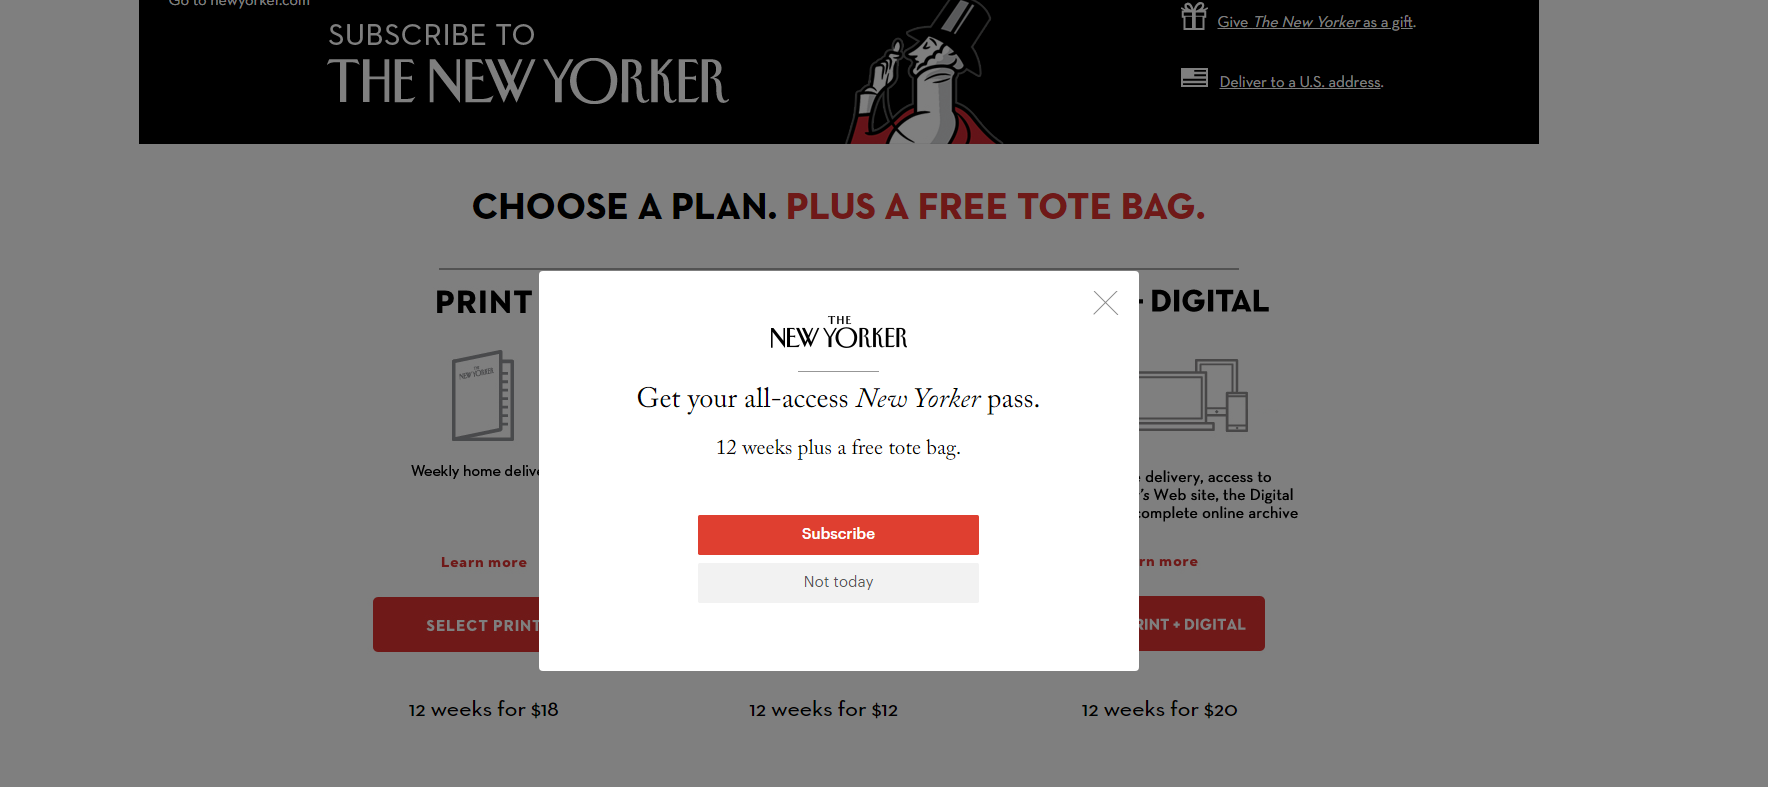 Exit pop-up The New Yorker